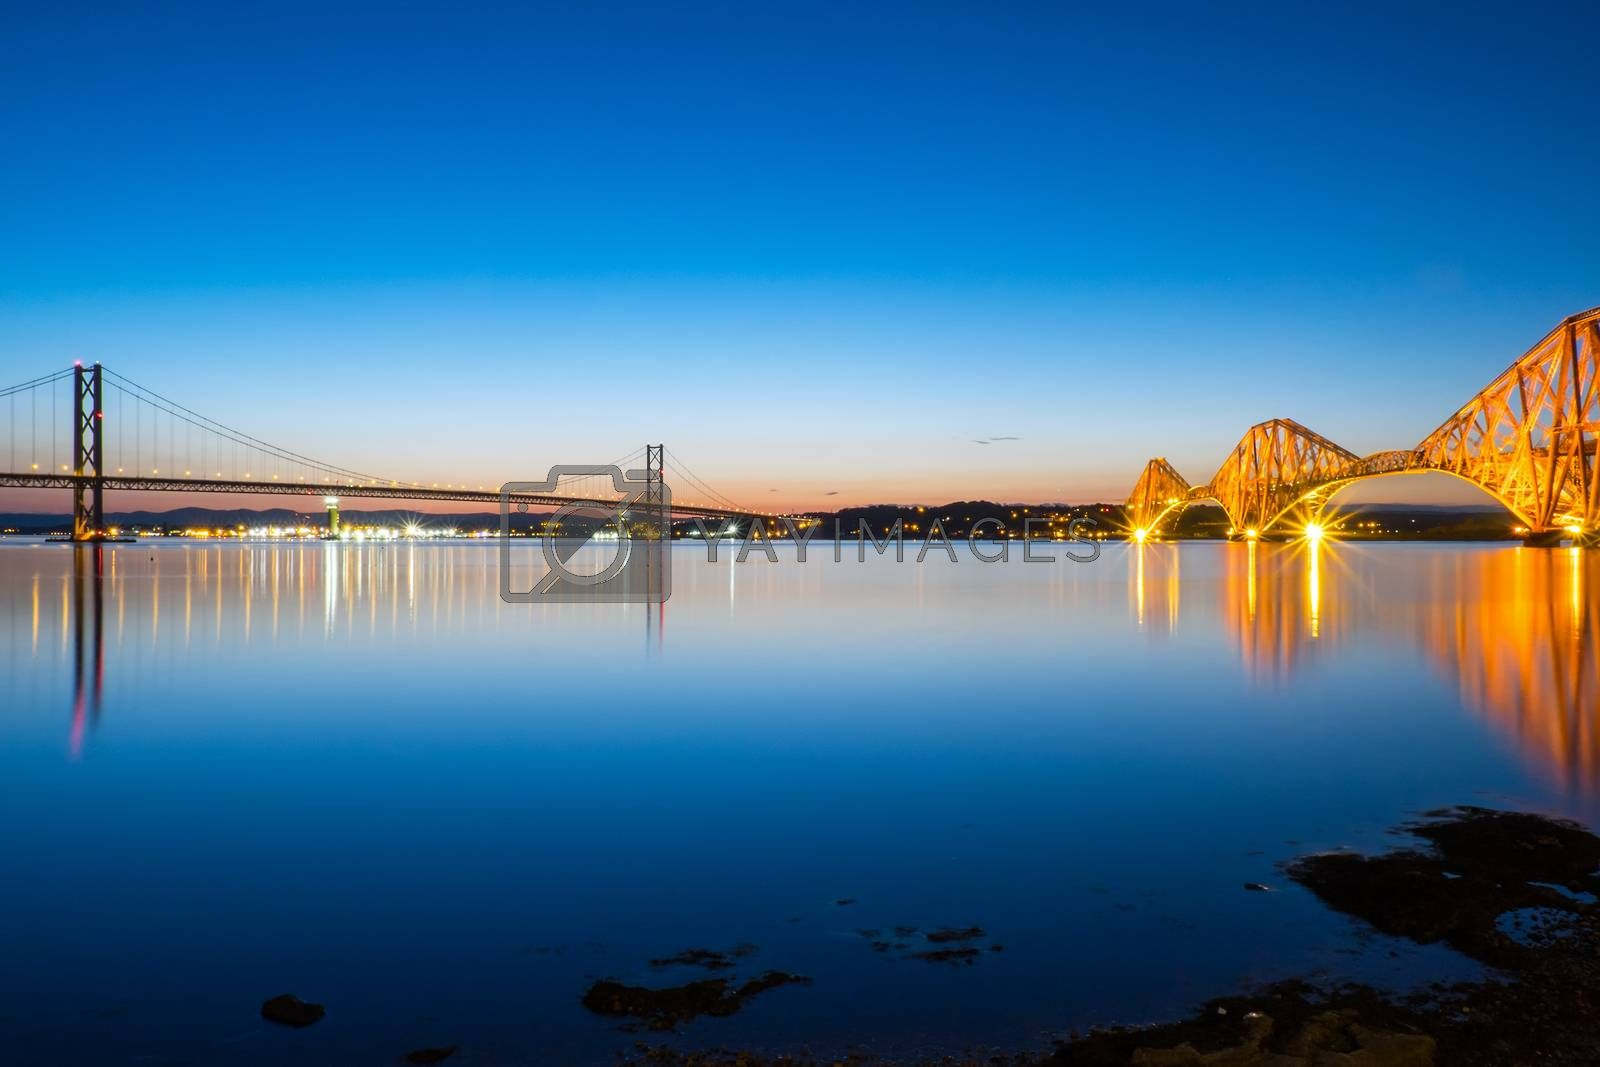 The bridges over the Forth of Firth at South Queensferry, Scotland